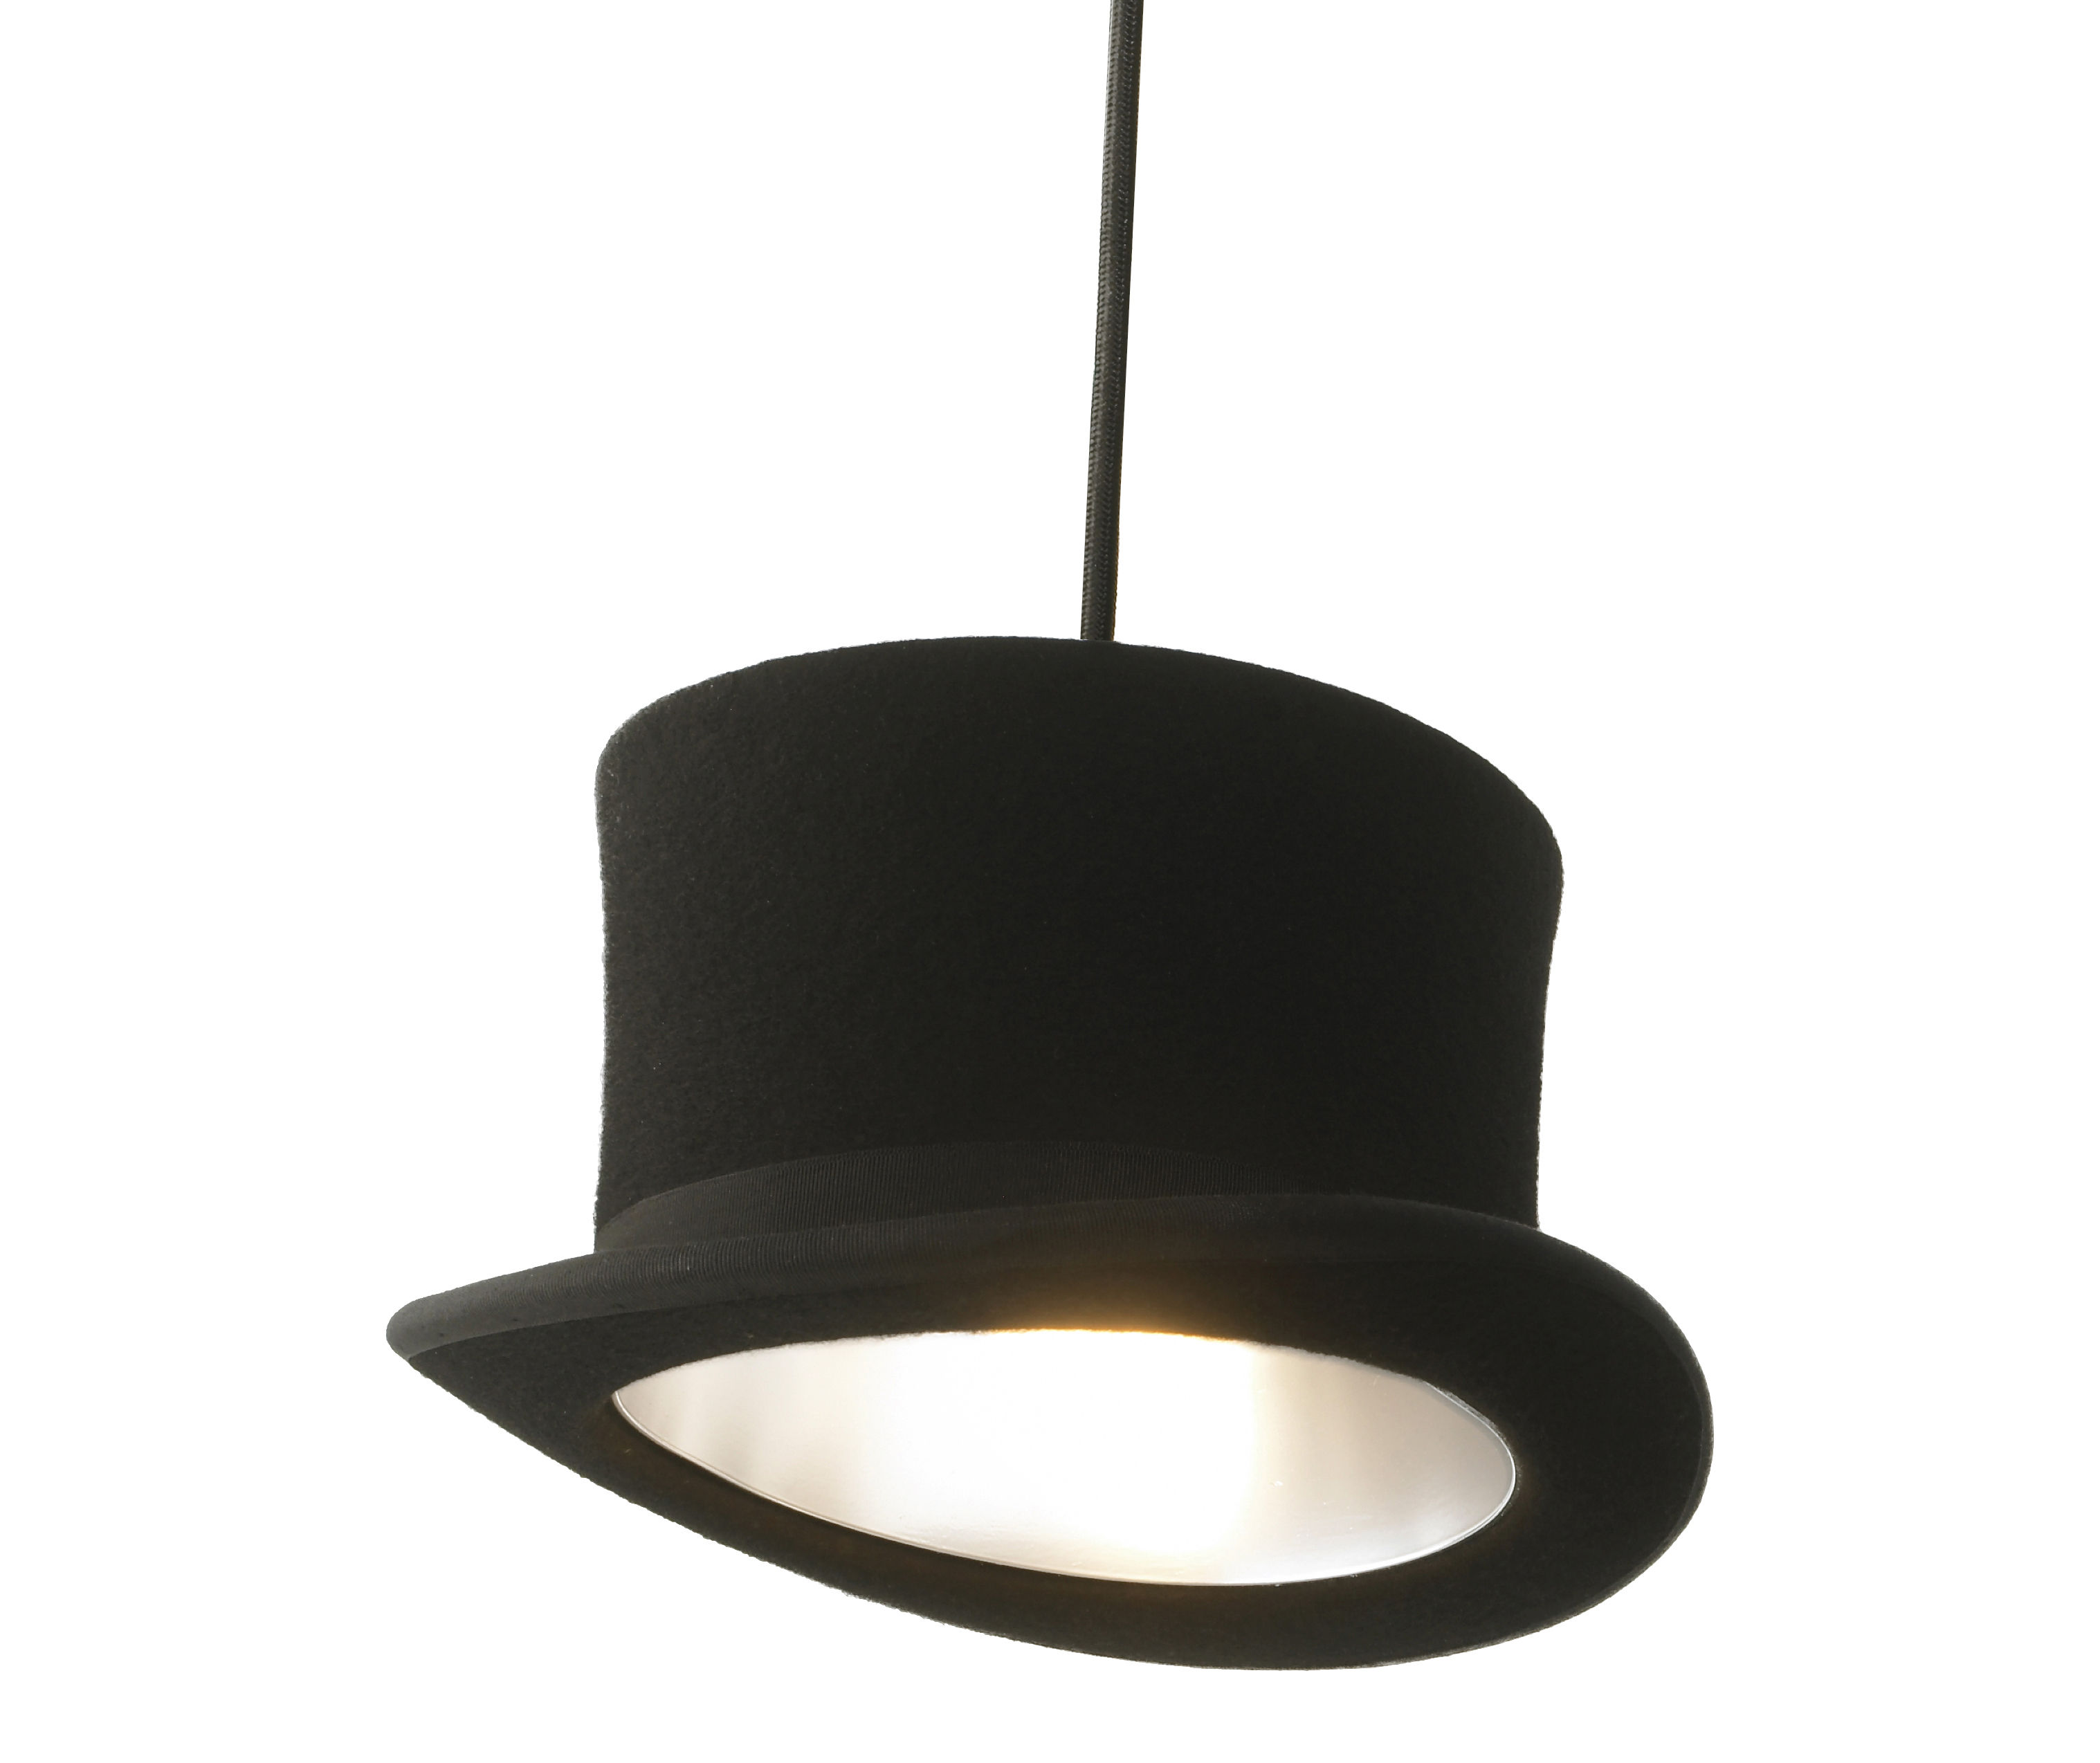 Lighting - Pendant Lighting - Wooster Pendant by Innermost - Black top / Silver inside - Anodized aluminium, Felted wool